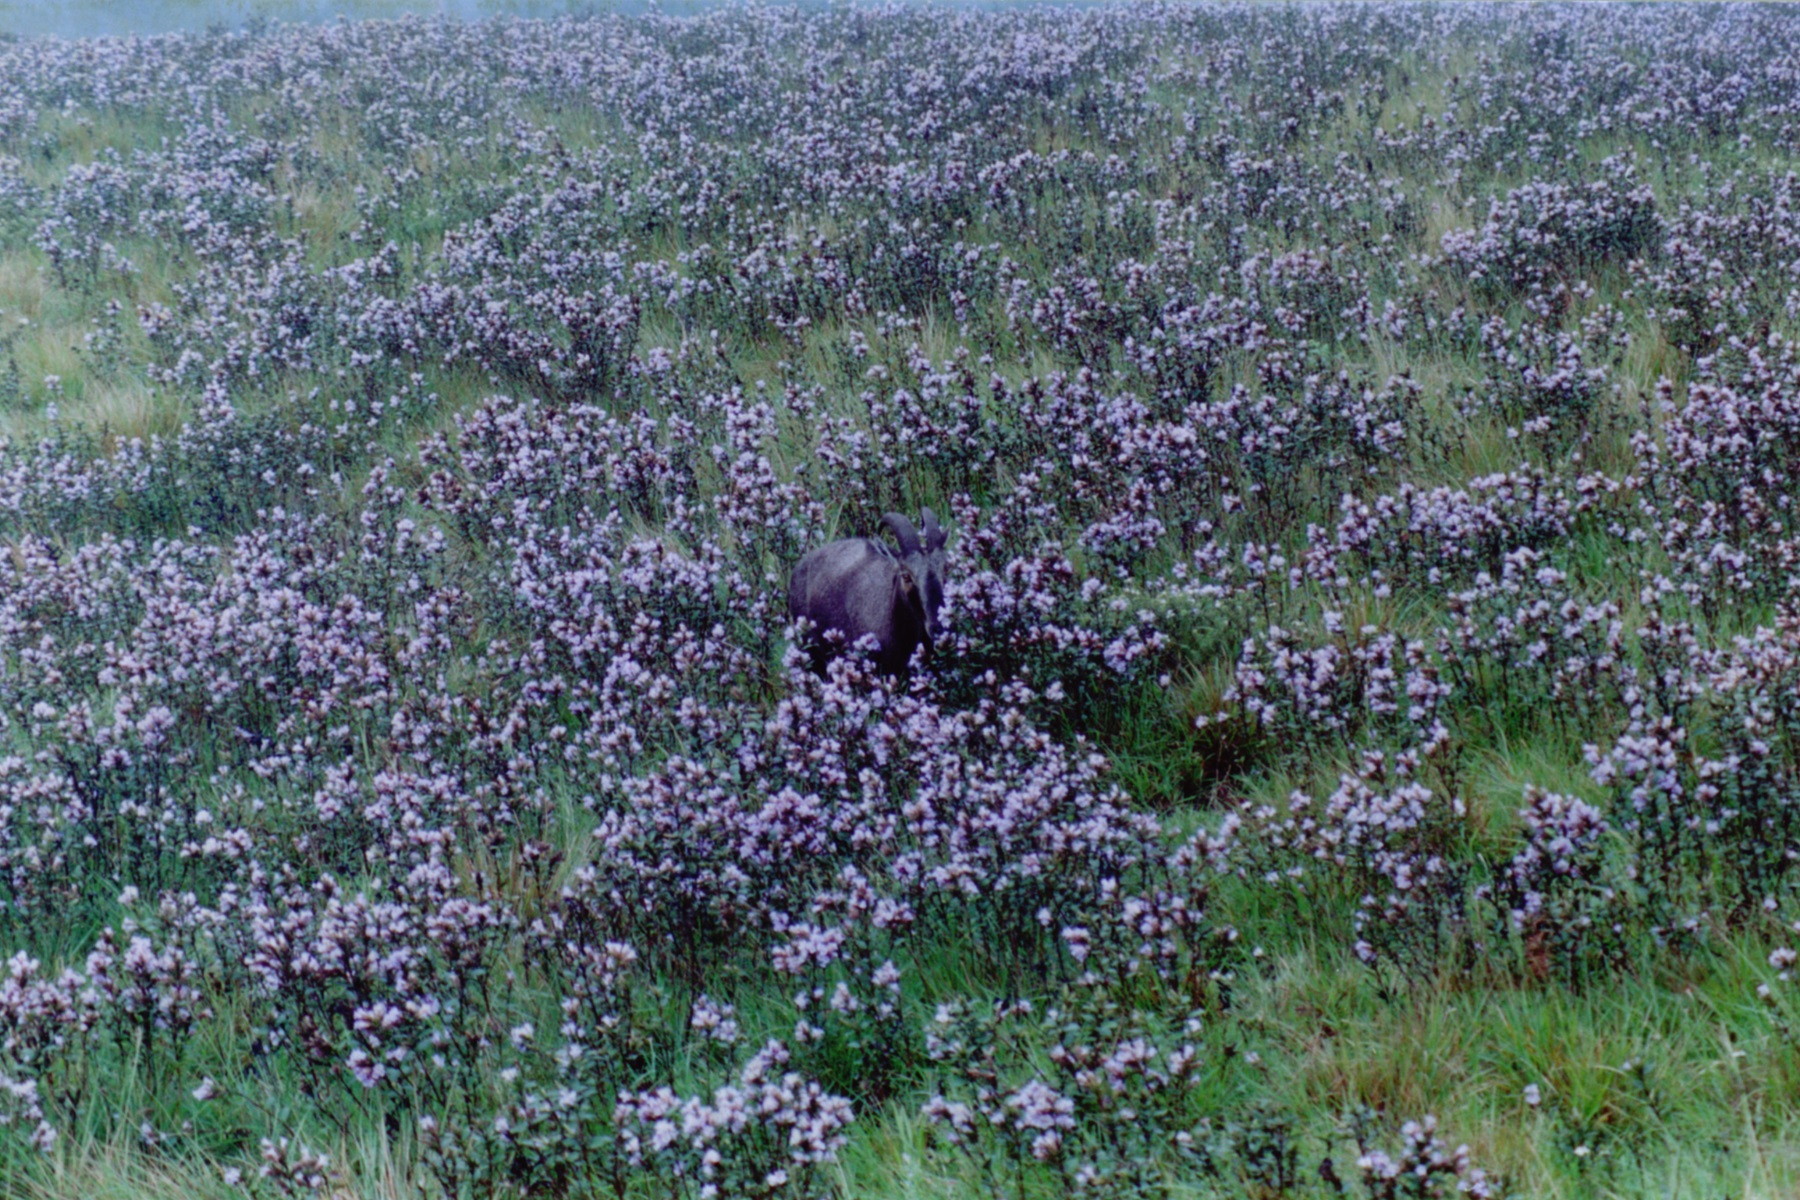 A Nilgiri tahr grazes amidst kurinji shrubs. Photo Credit: Prasad Ambattu